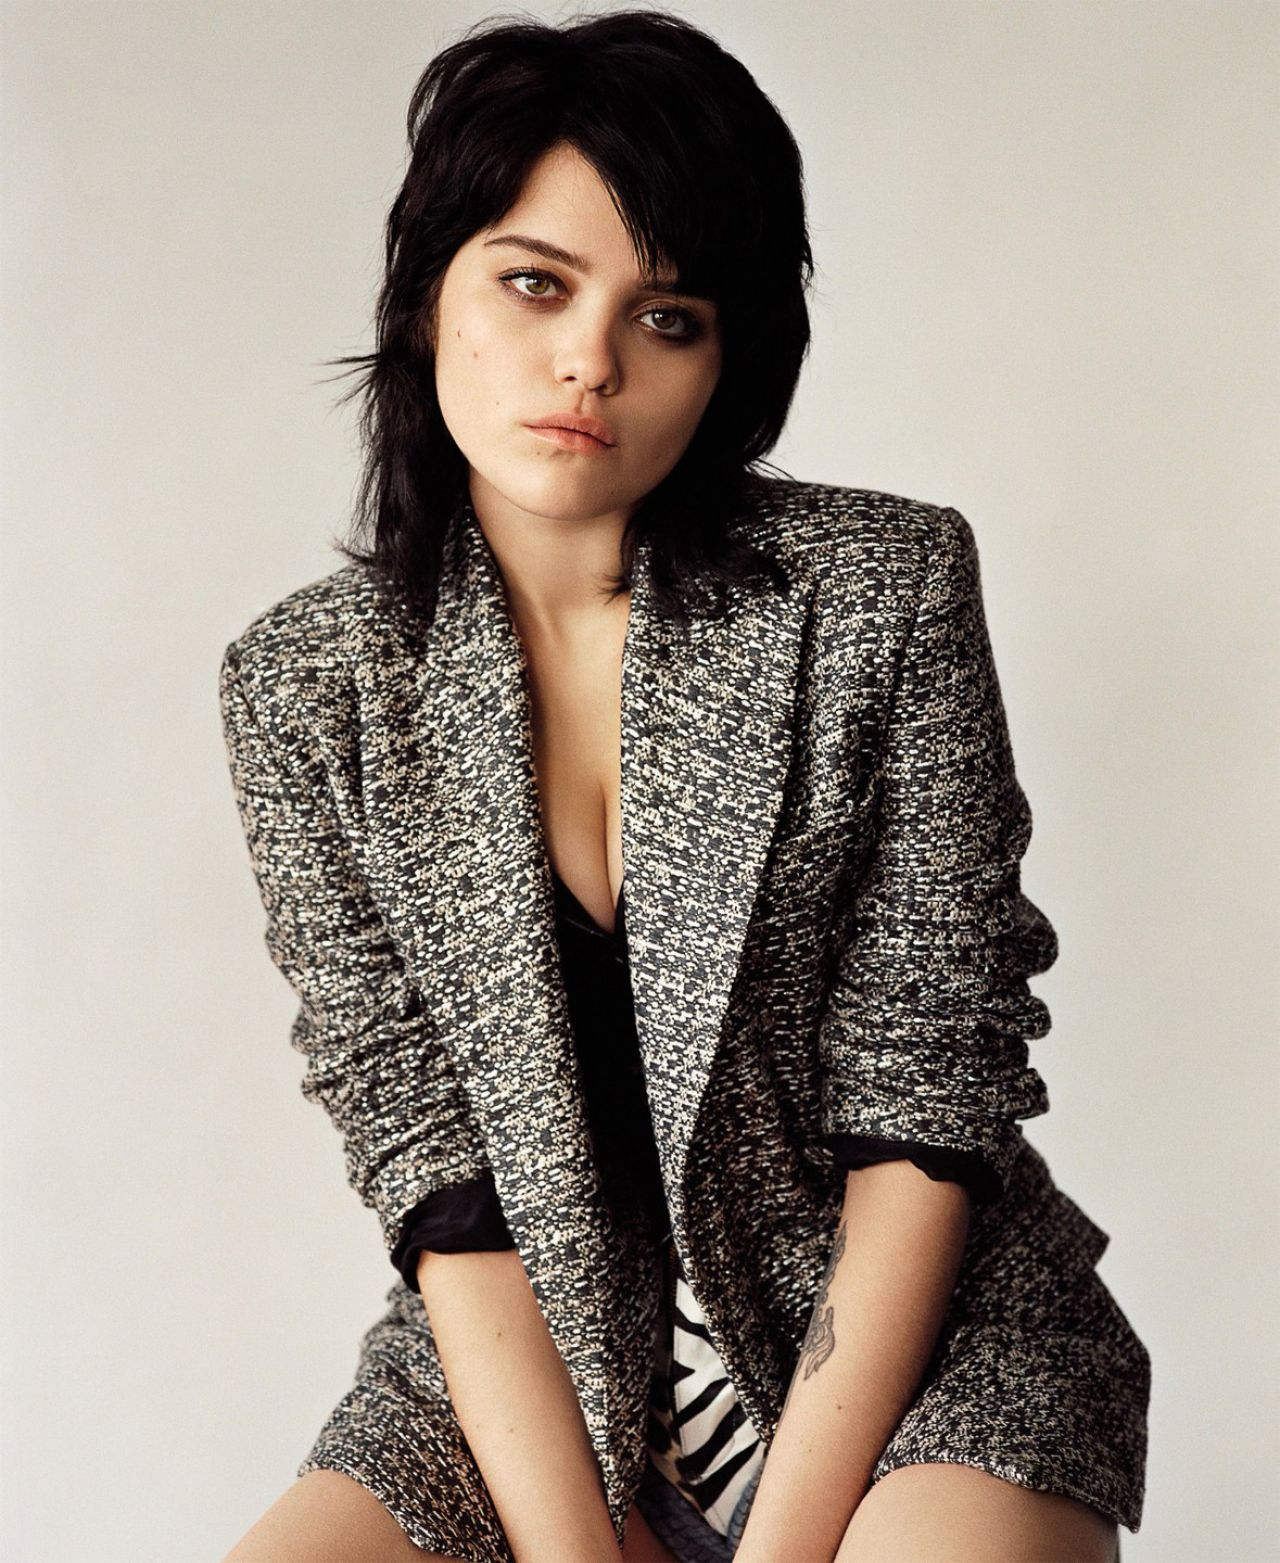 Sky Ferreira - Photoshoot for M Le Monde Magazine April 2014 Issue